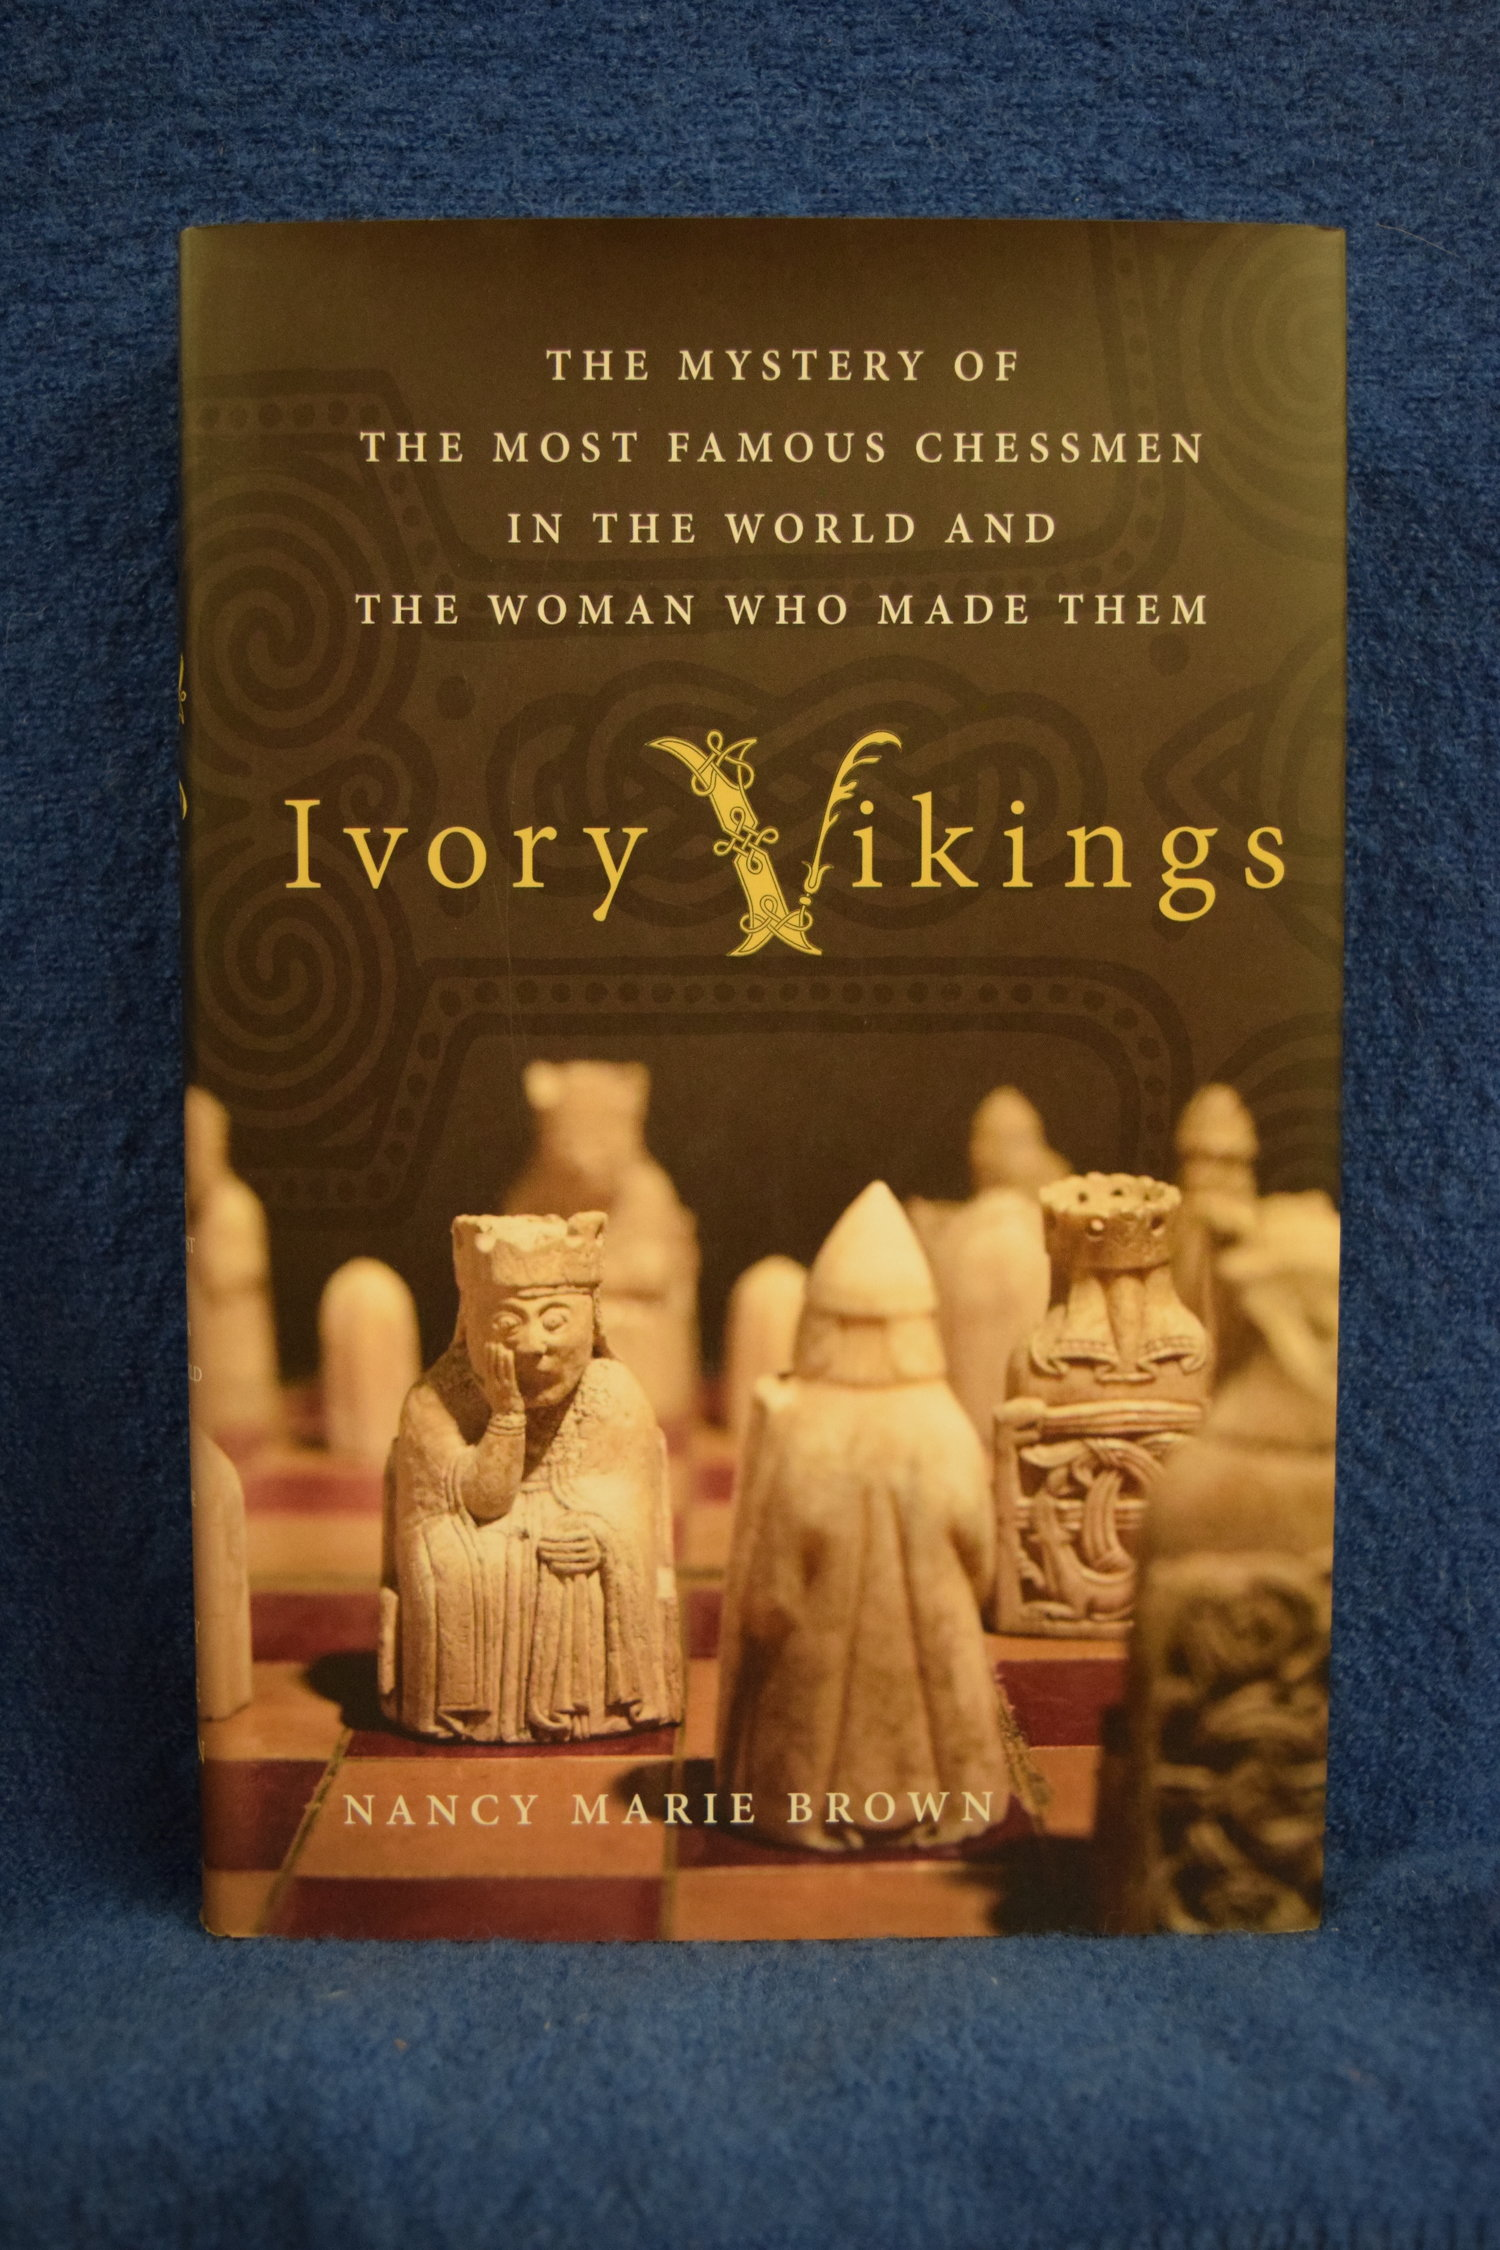 The Mystery of the Most Famous Chessmen in the World and the Woman Who Made Them Ivory Vikings